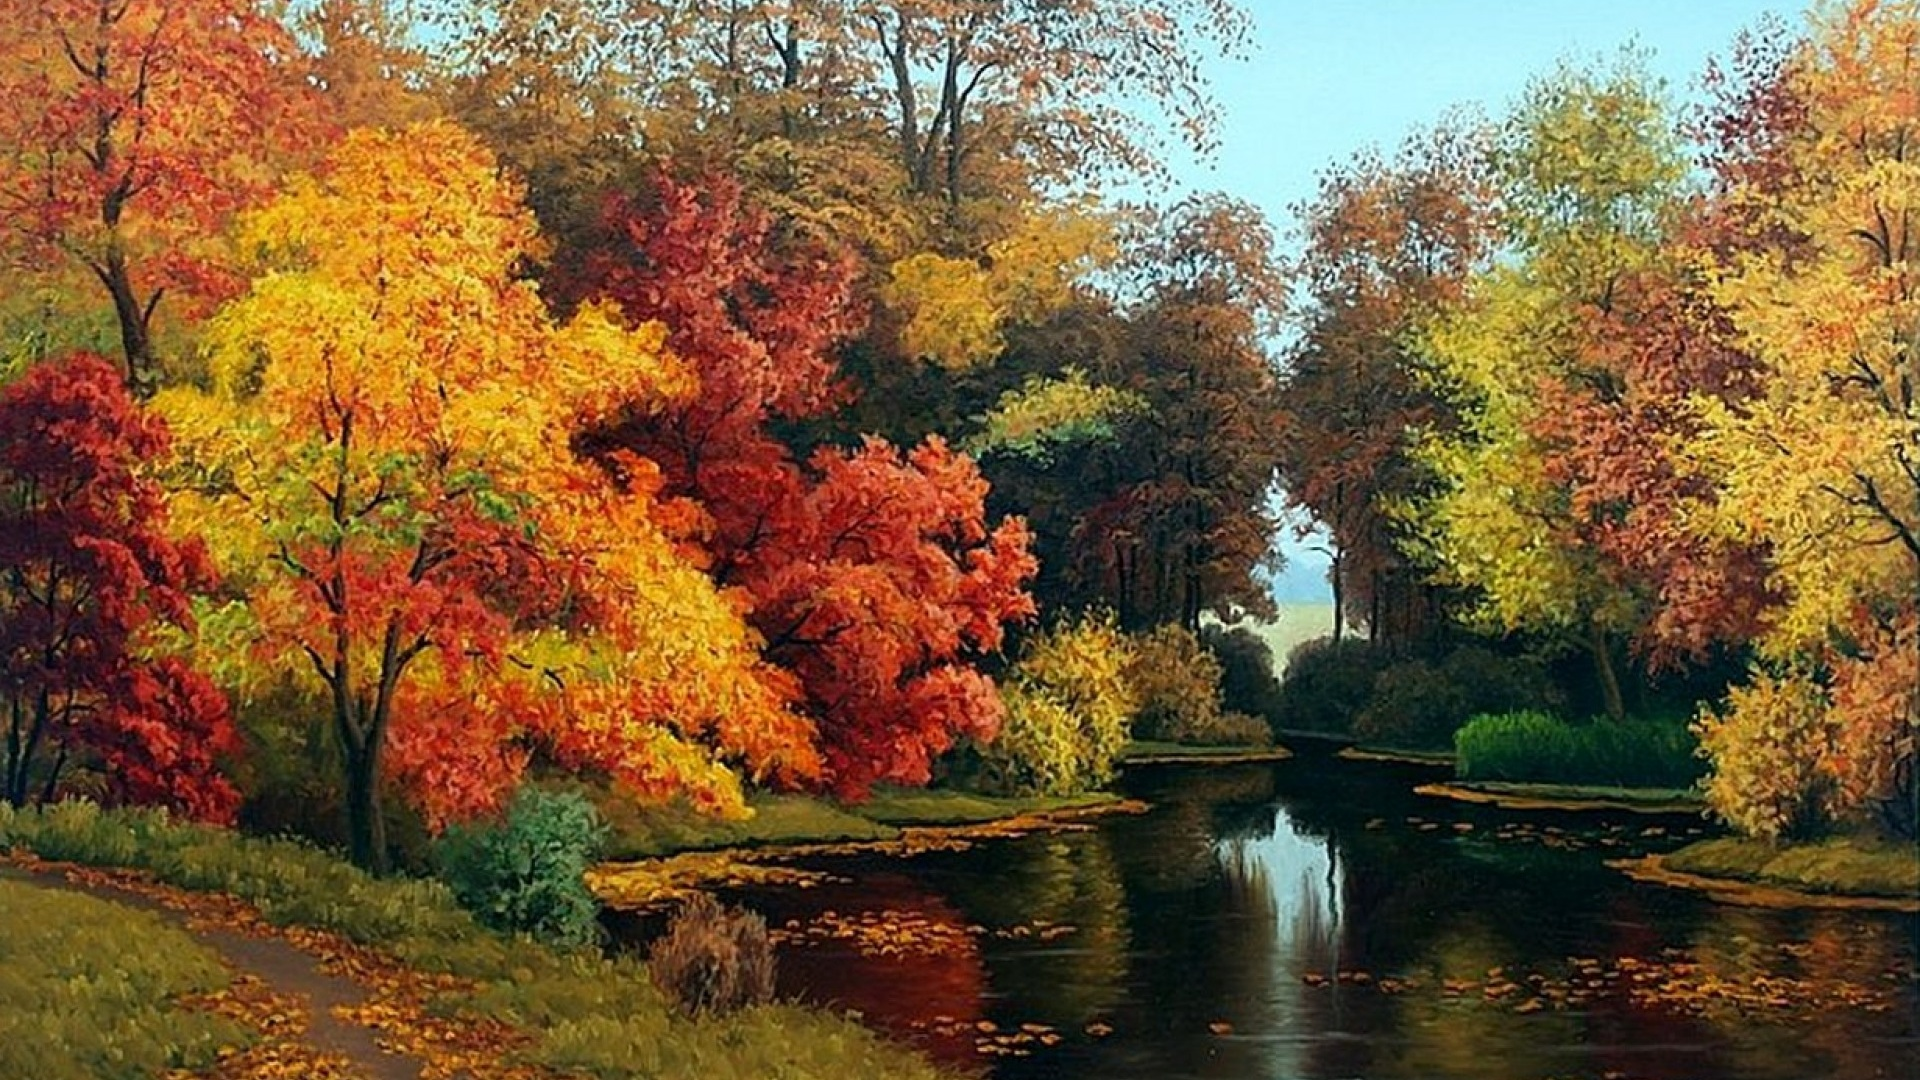 Hd Fall Wallpapers For Mac 1920x1080 Adorable Autumn Forest Amp Pond Desktop Pc And Mac